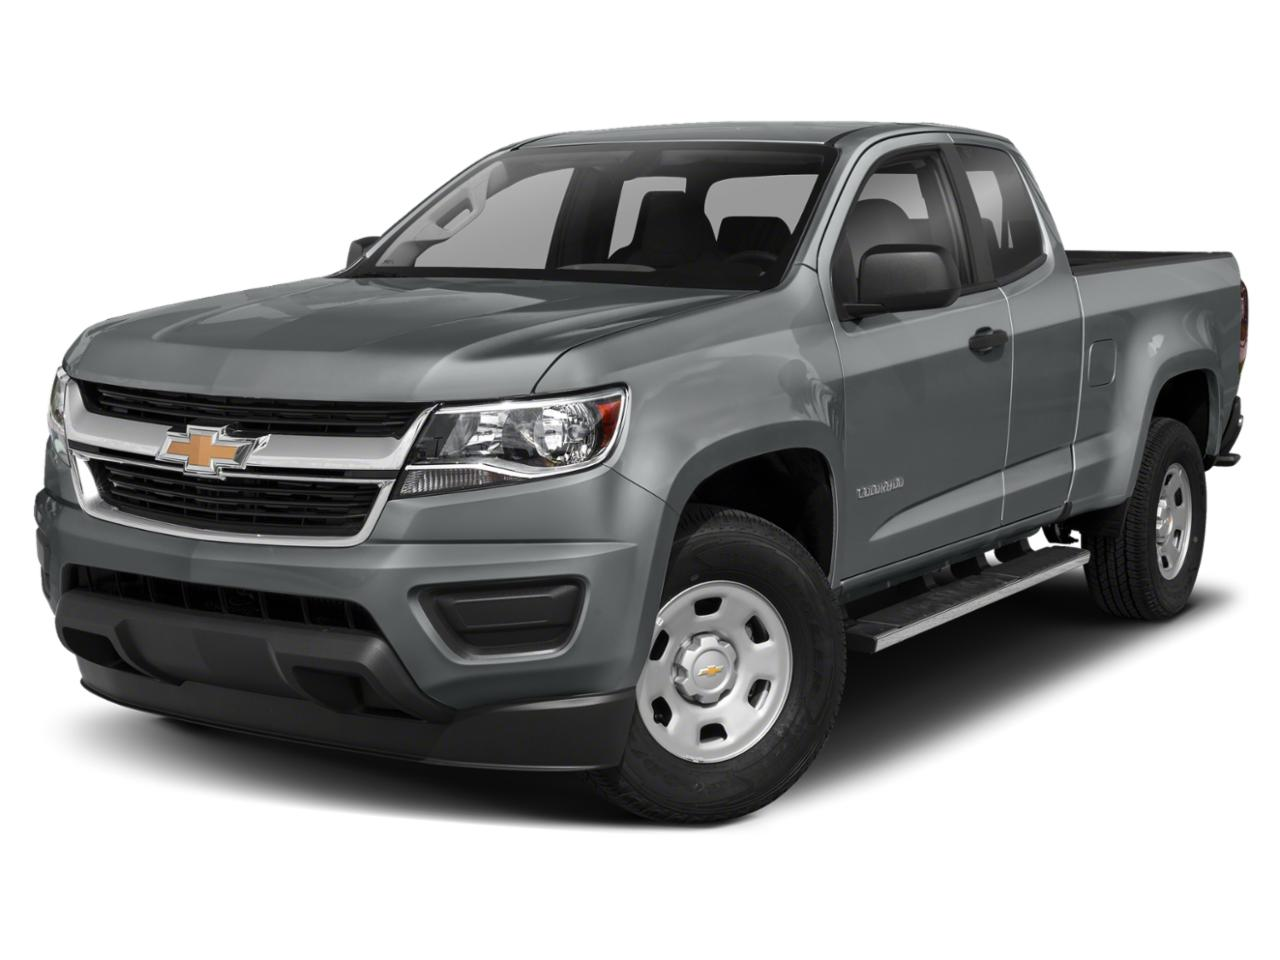 2020 Chevrolet Colorado Vehicle Photo in Little Falls, NJ 07424